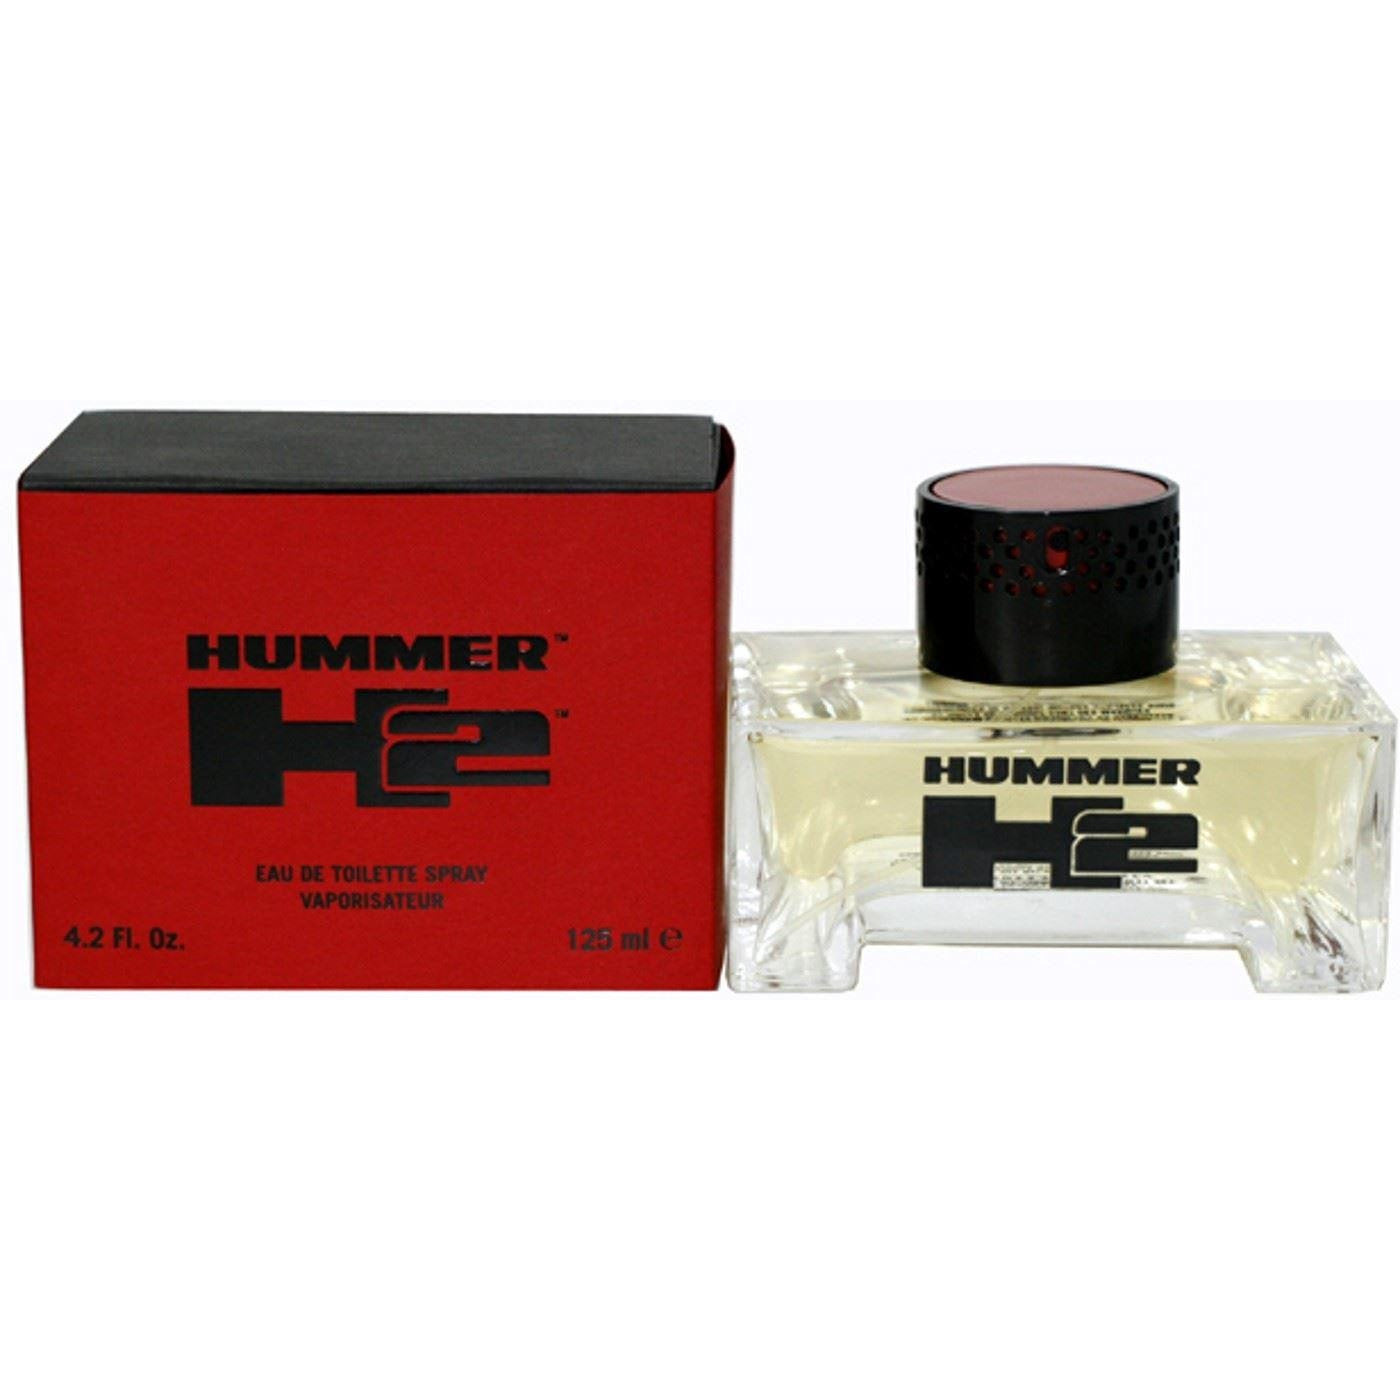 hummer-h2-cologne-spray-for-men-edt-4-2-oz-brand-new-in-box